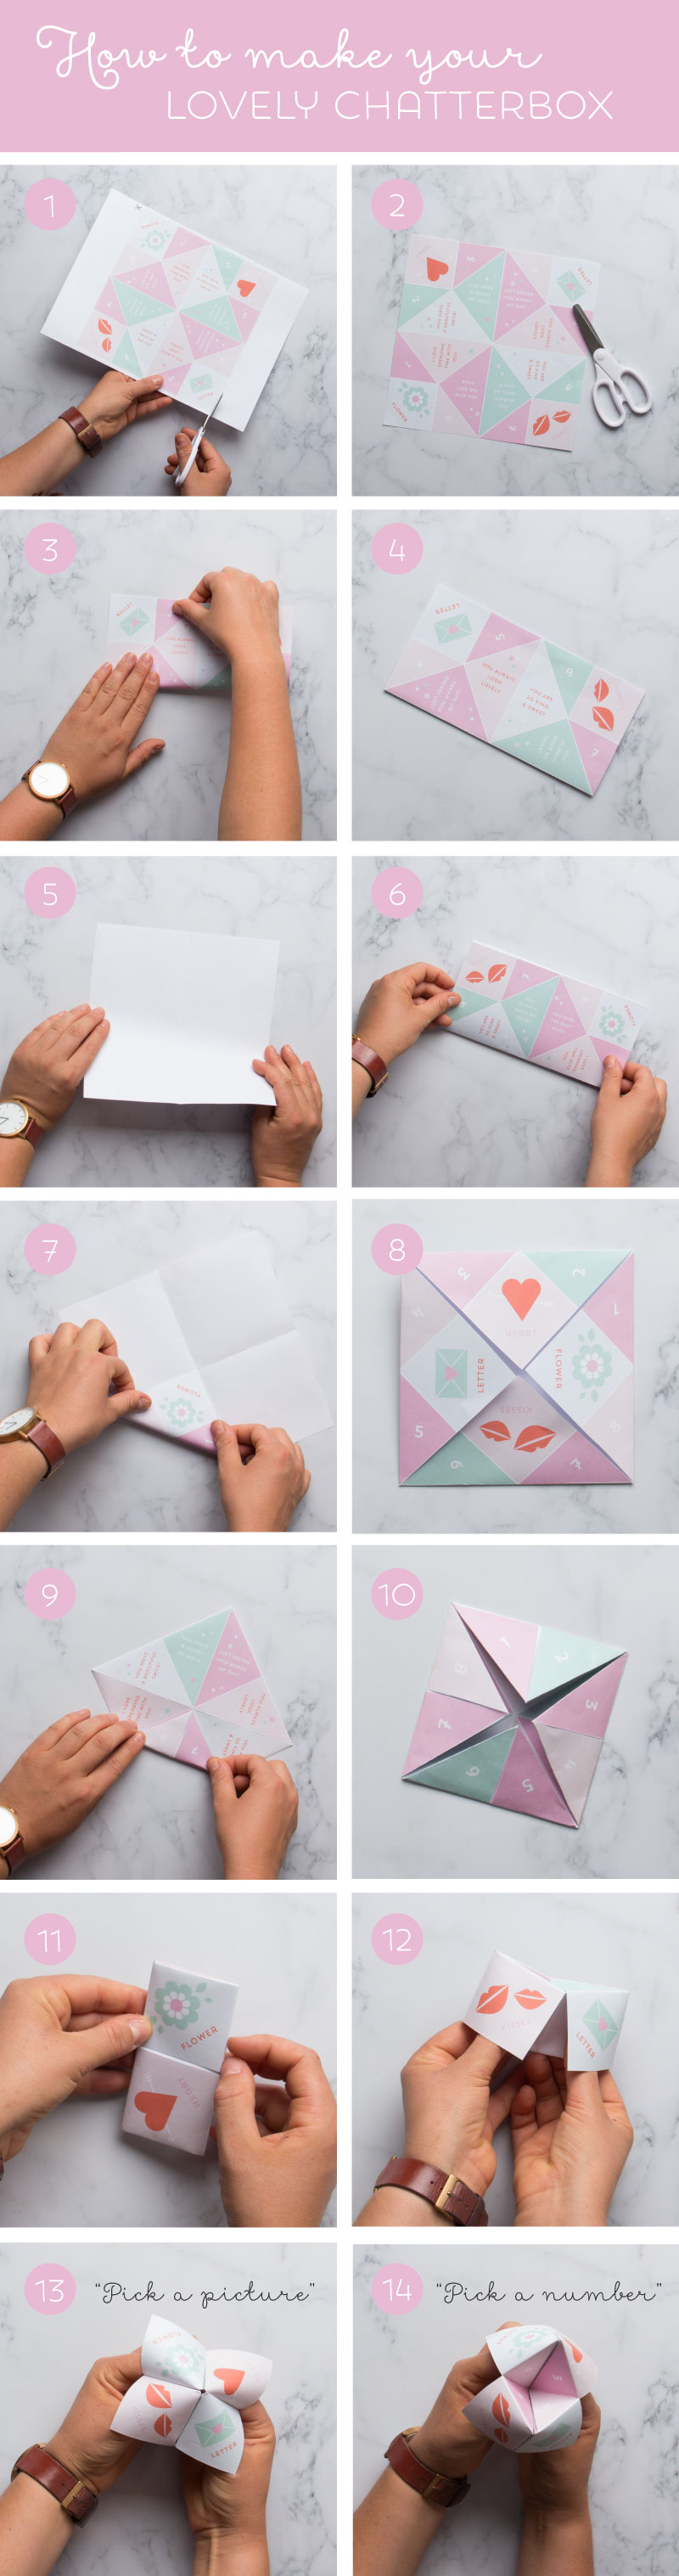 Lovely_Chatterbox_Post_051